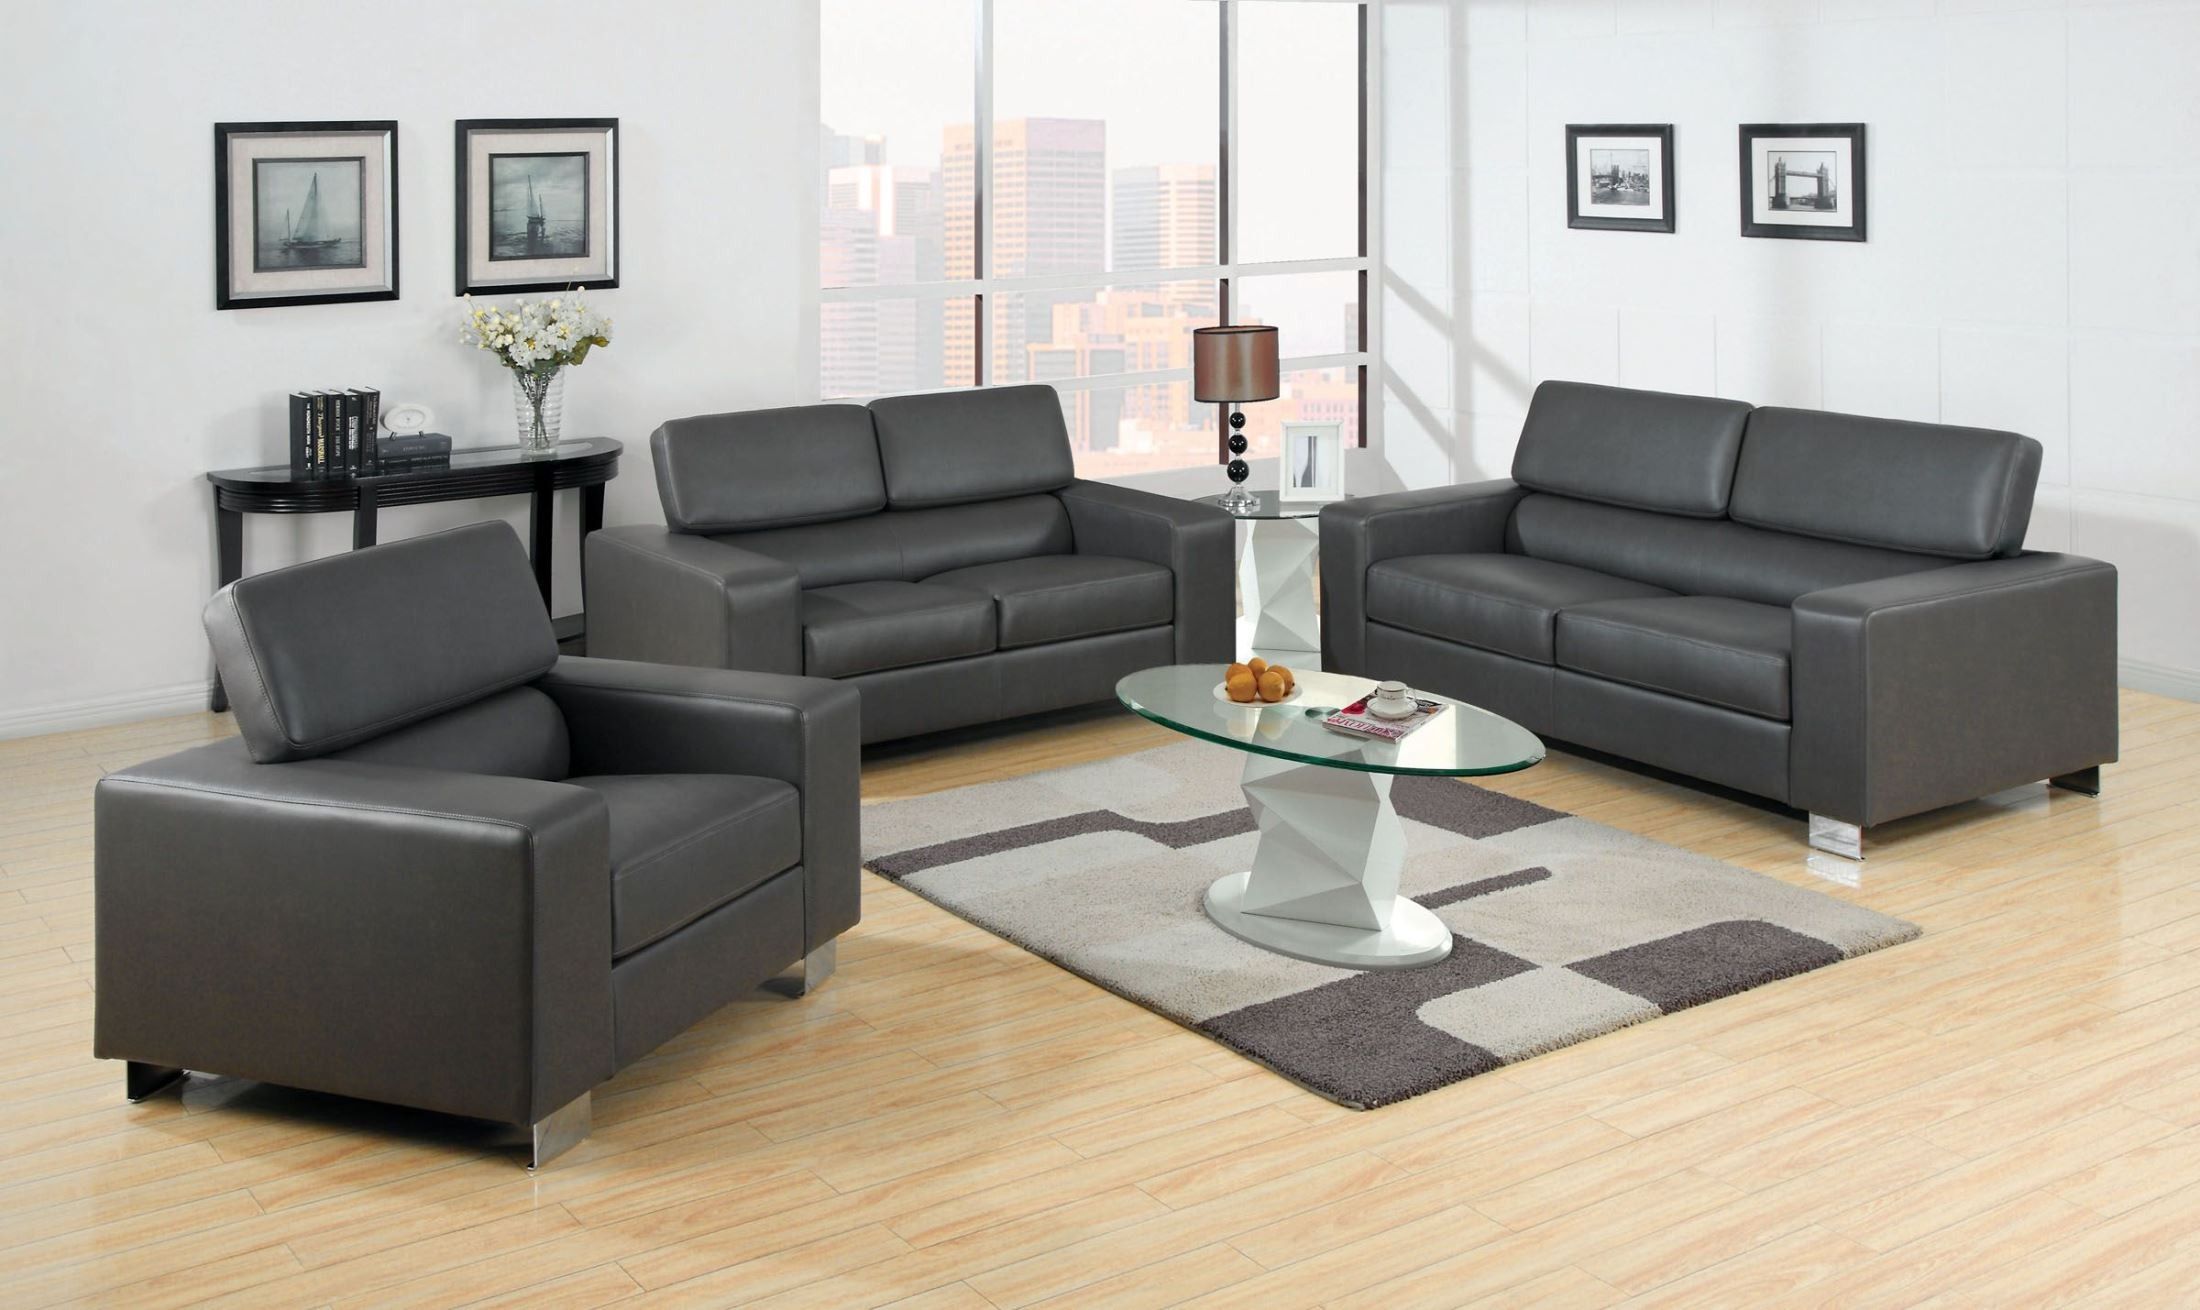 Makri gray bonded leather match living room set cm6336gy for M s living room furniture